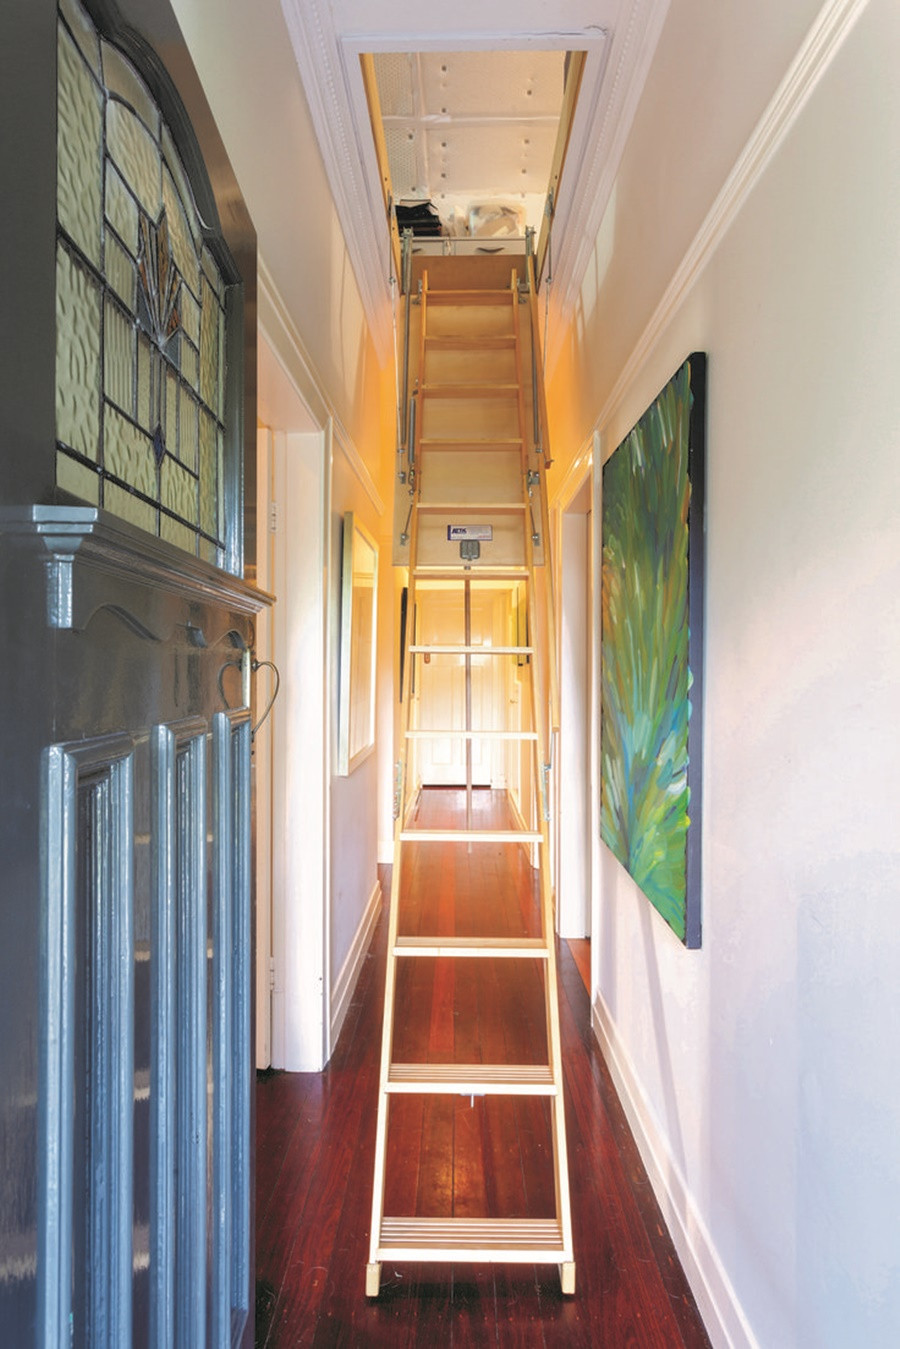 Best ideas about Pull Down Attic Stairs Lowes . Save or Pin Drop Down Lowes Attic Ladder — Capricornradio Now.